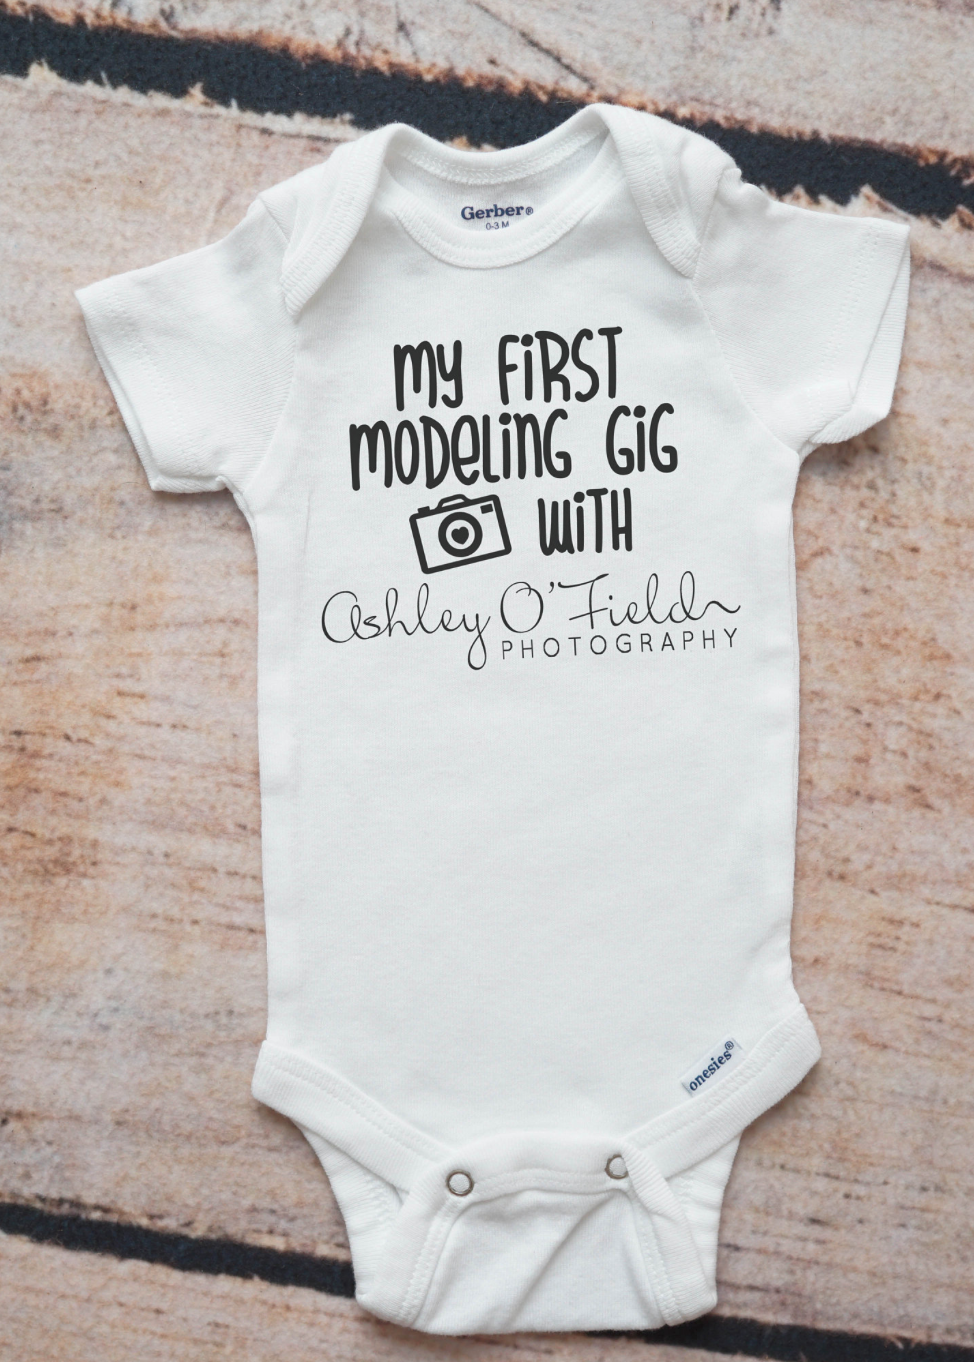 Modeling gig photography client gift photographer onesie newborn girl gift newborn boy gift photo prop newborn photography prop customized afiliate